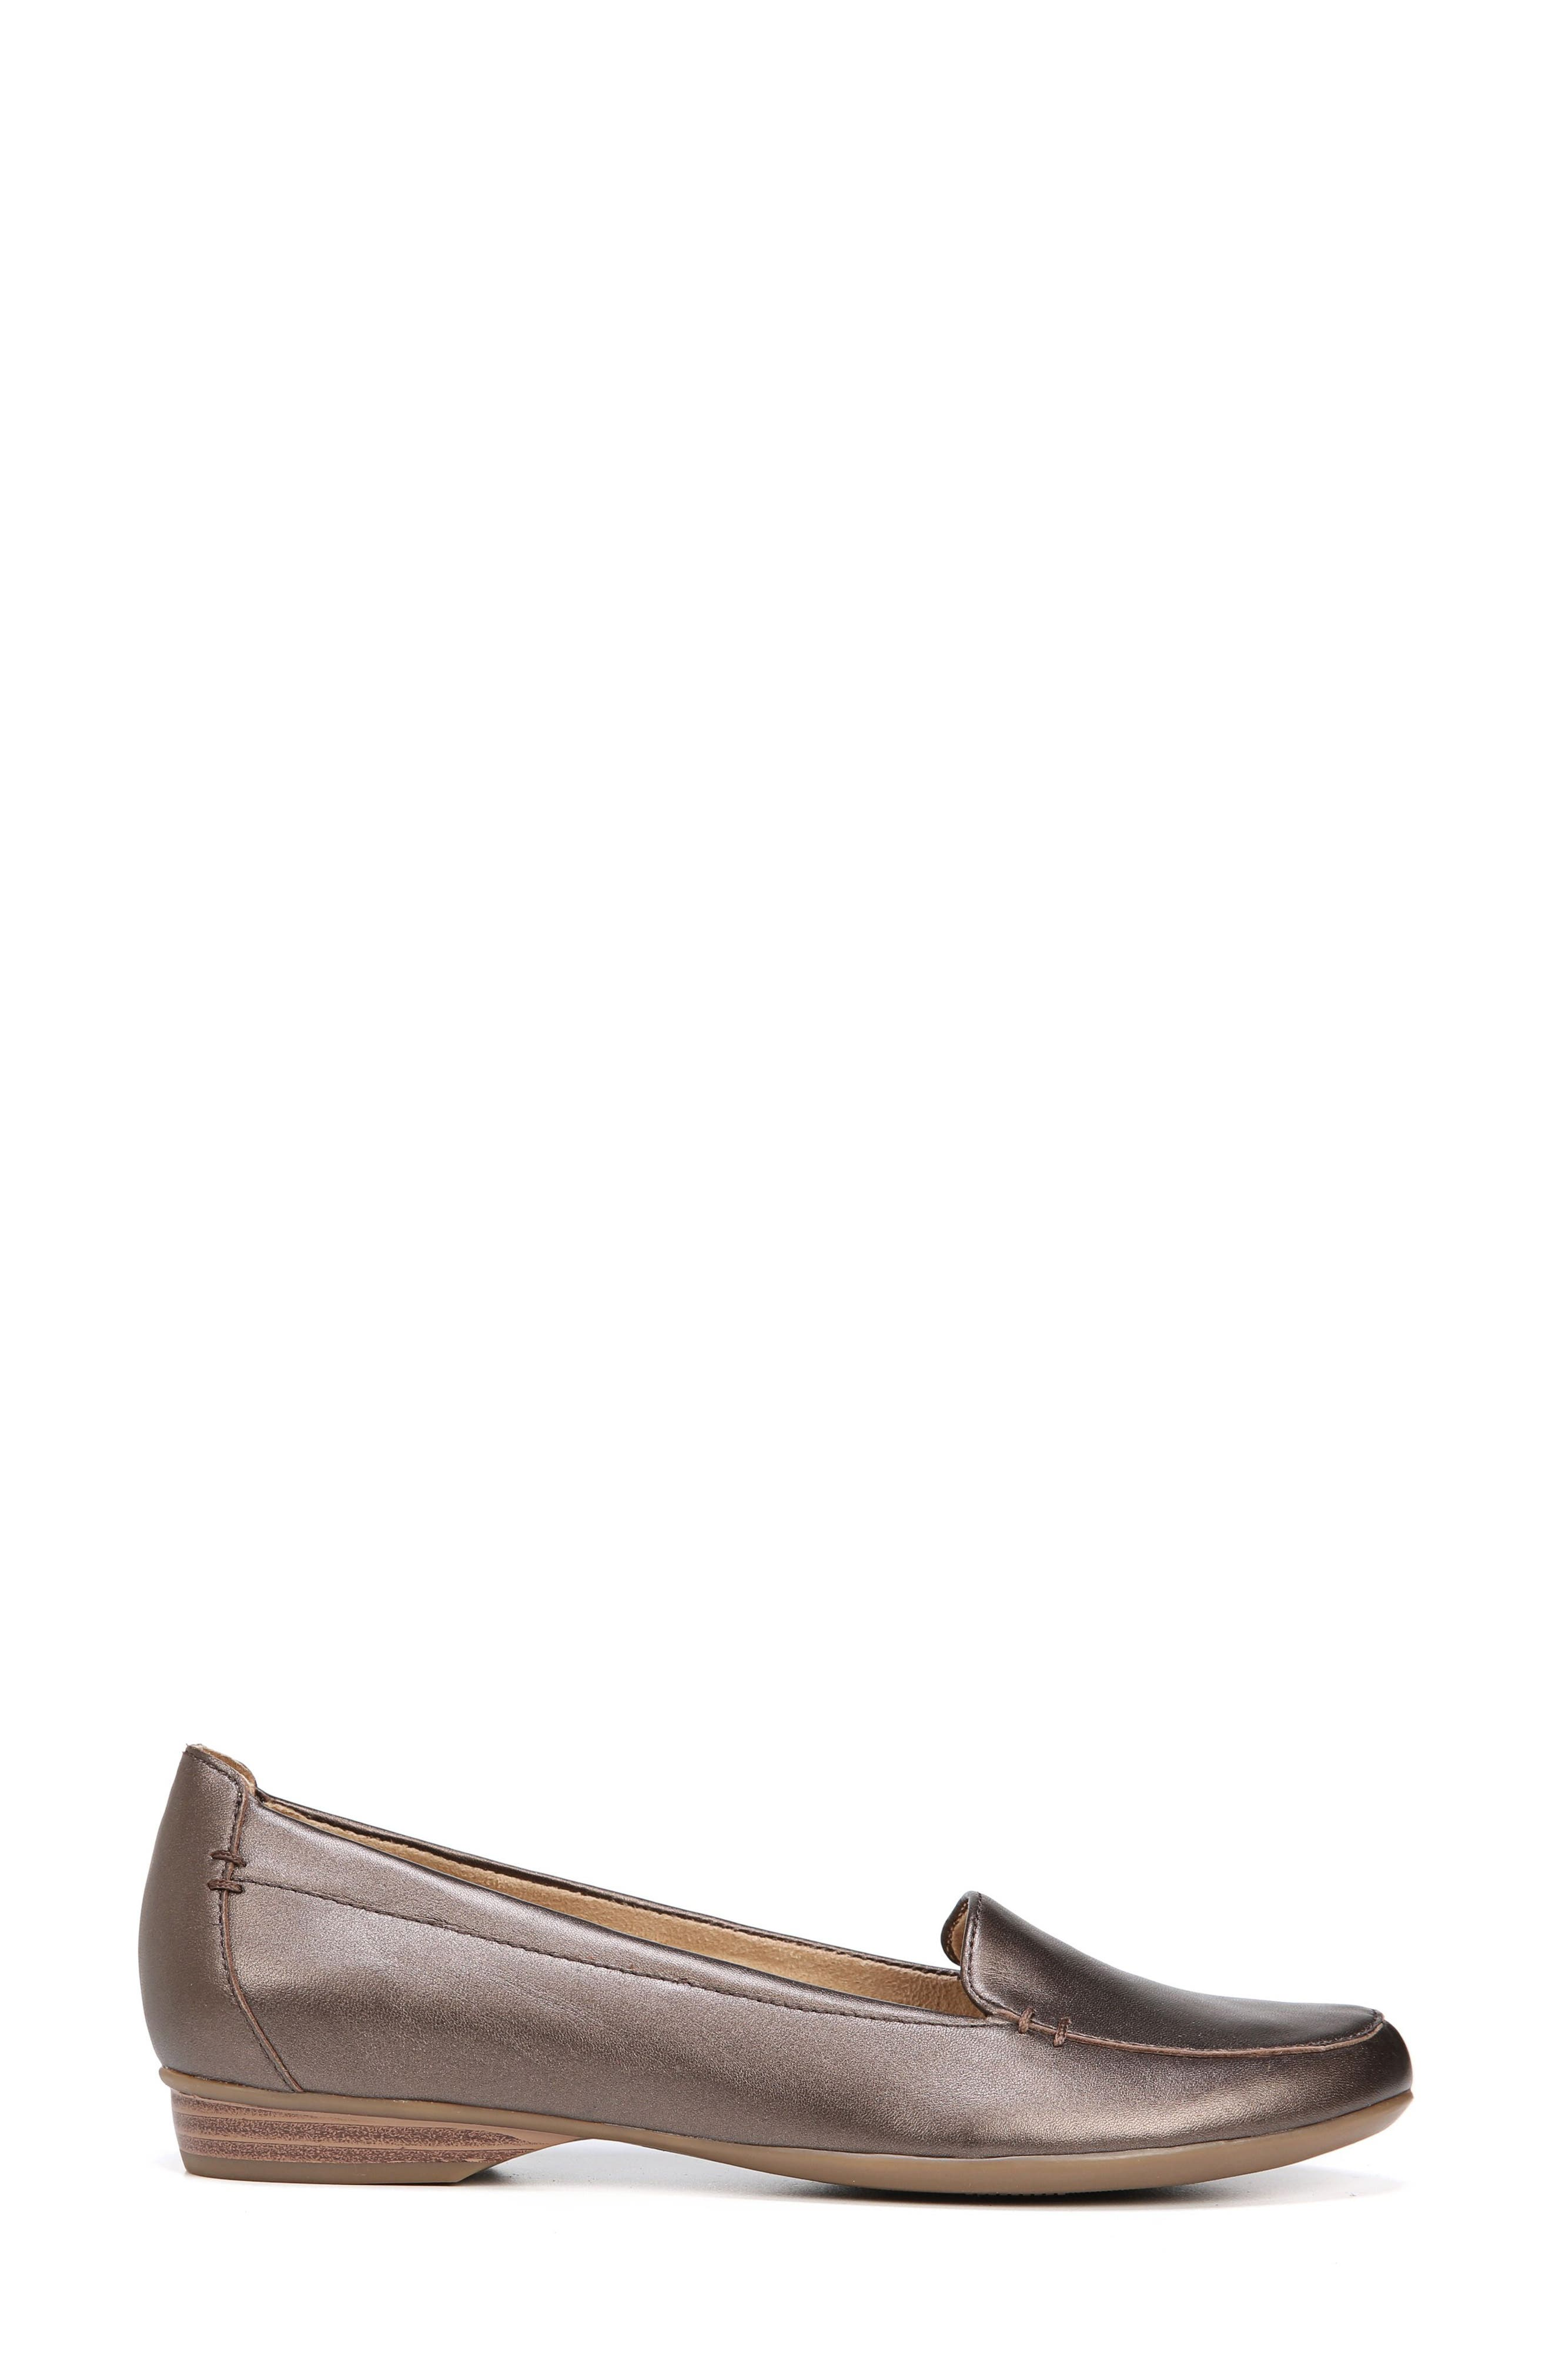 'Saban' Leather Loafer,                             Alternate thumbnail 3, color,                             BROWN BRONZE LEATHER